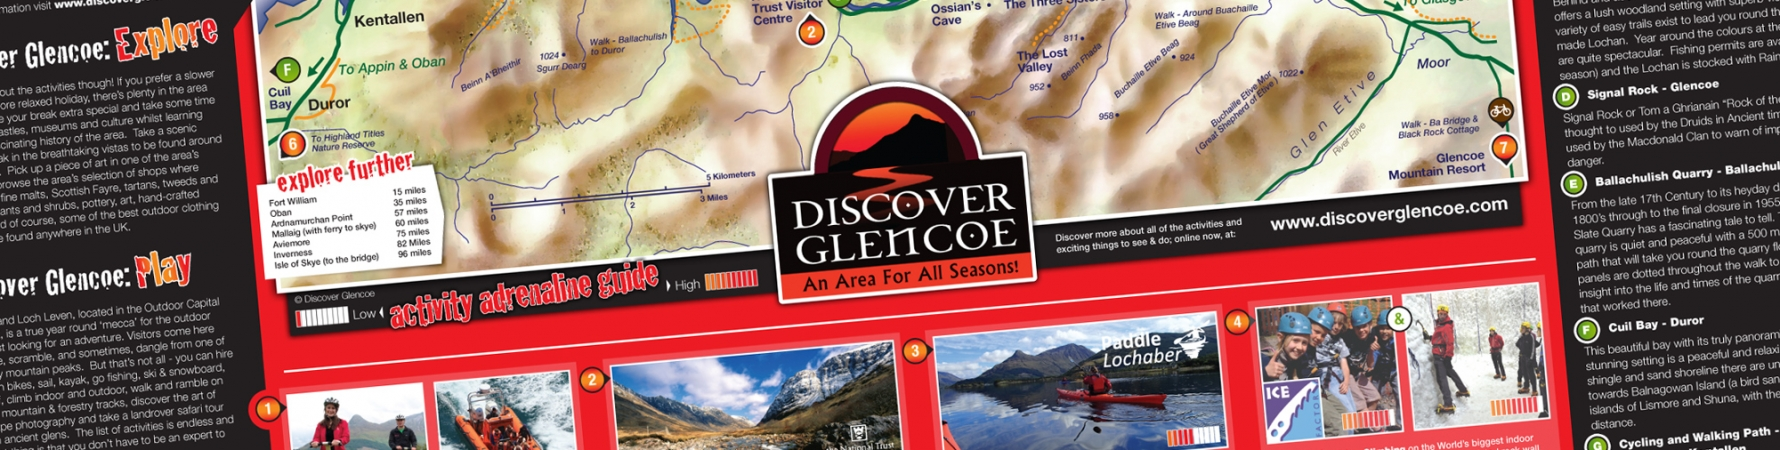 Design for Print - Discover Glencoe Map Design - lamontdesign